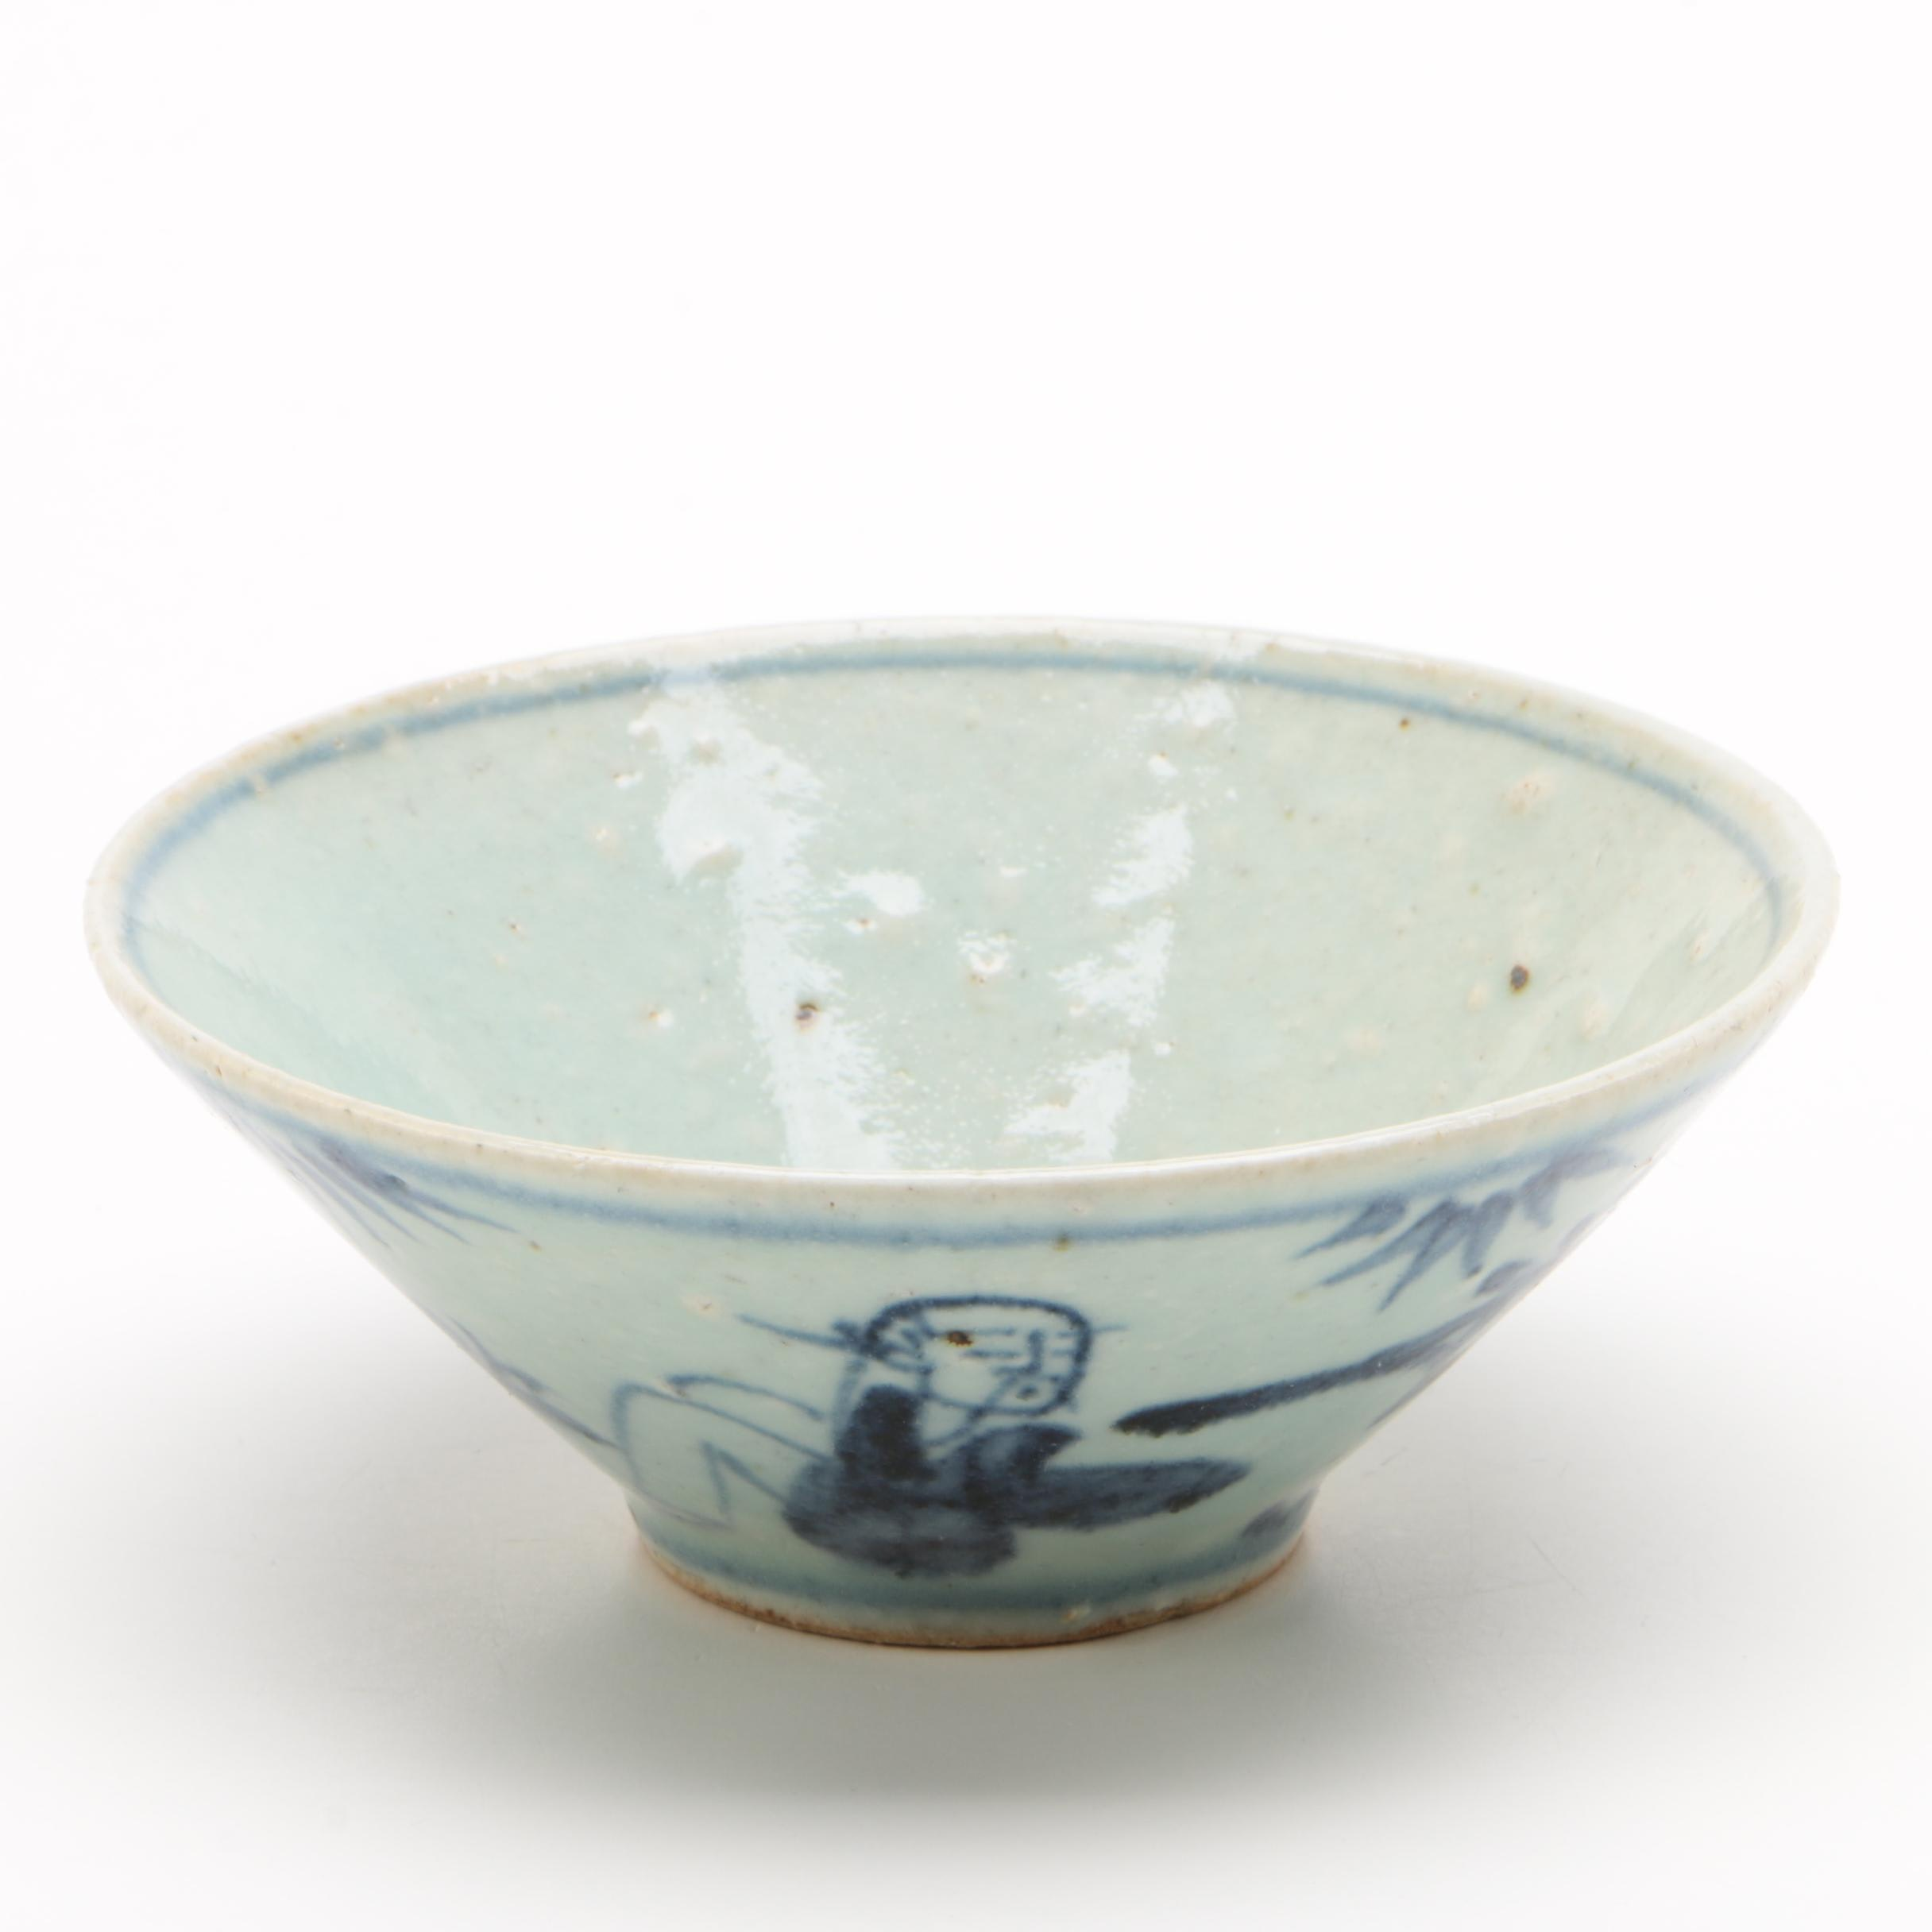 Zhangzhou Ware Hand Decorated Ceramic Bowl, Ming Dynasty